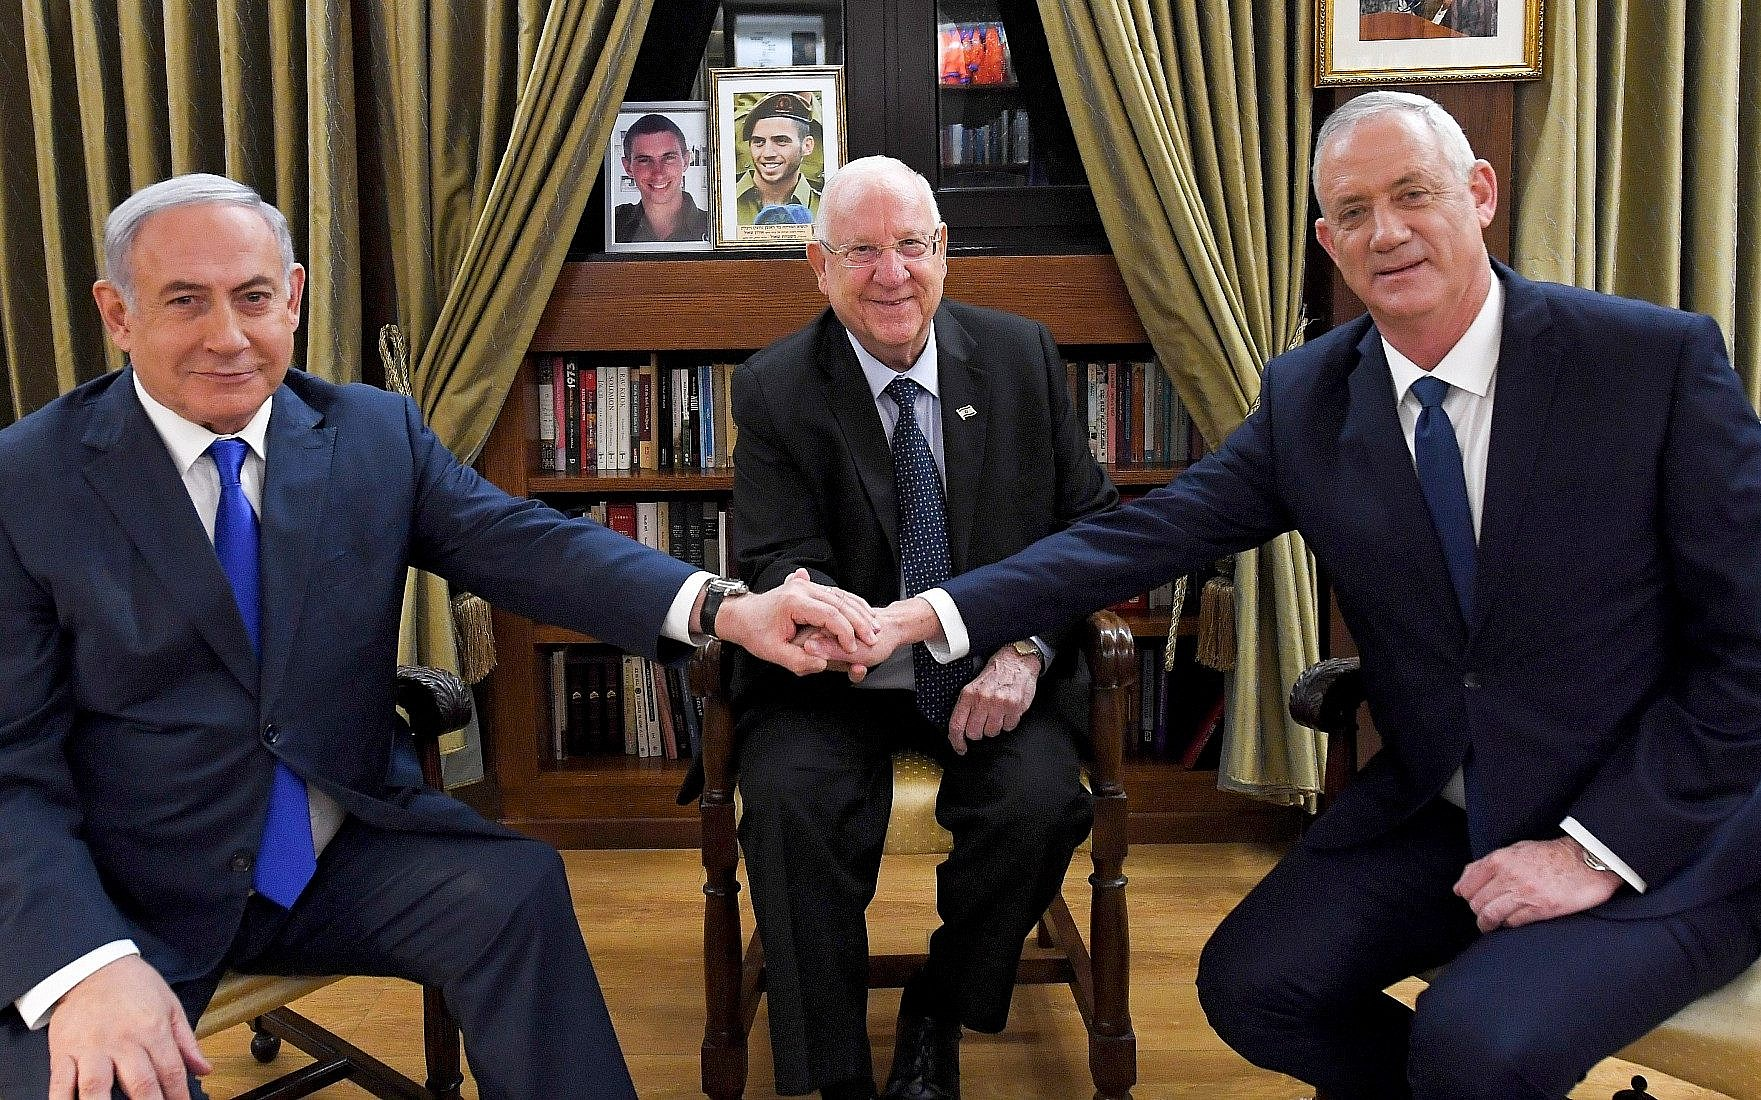 American Jewish Congress salutes the formation of a unity government in Israel